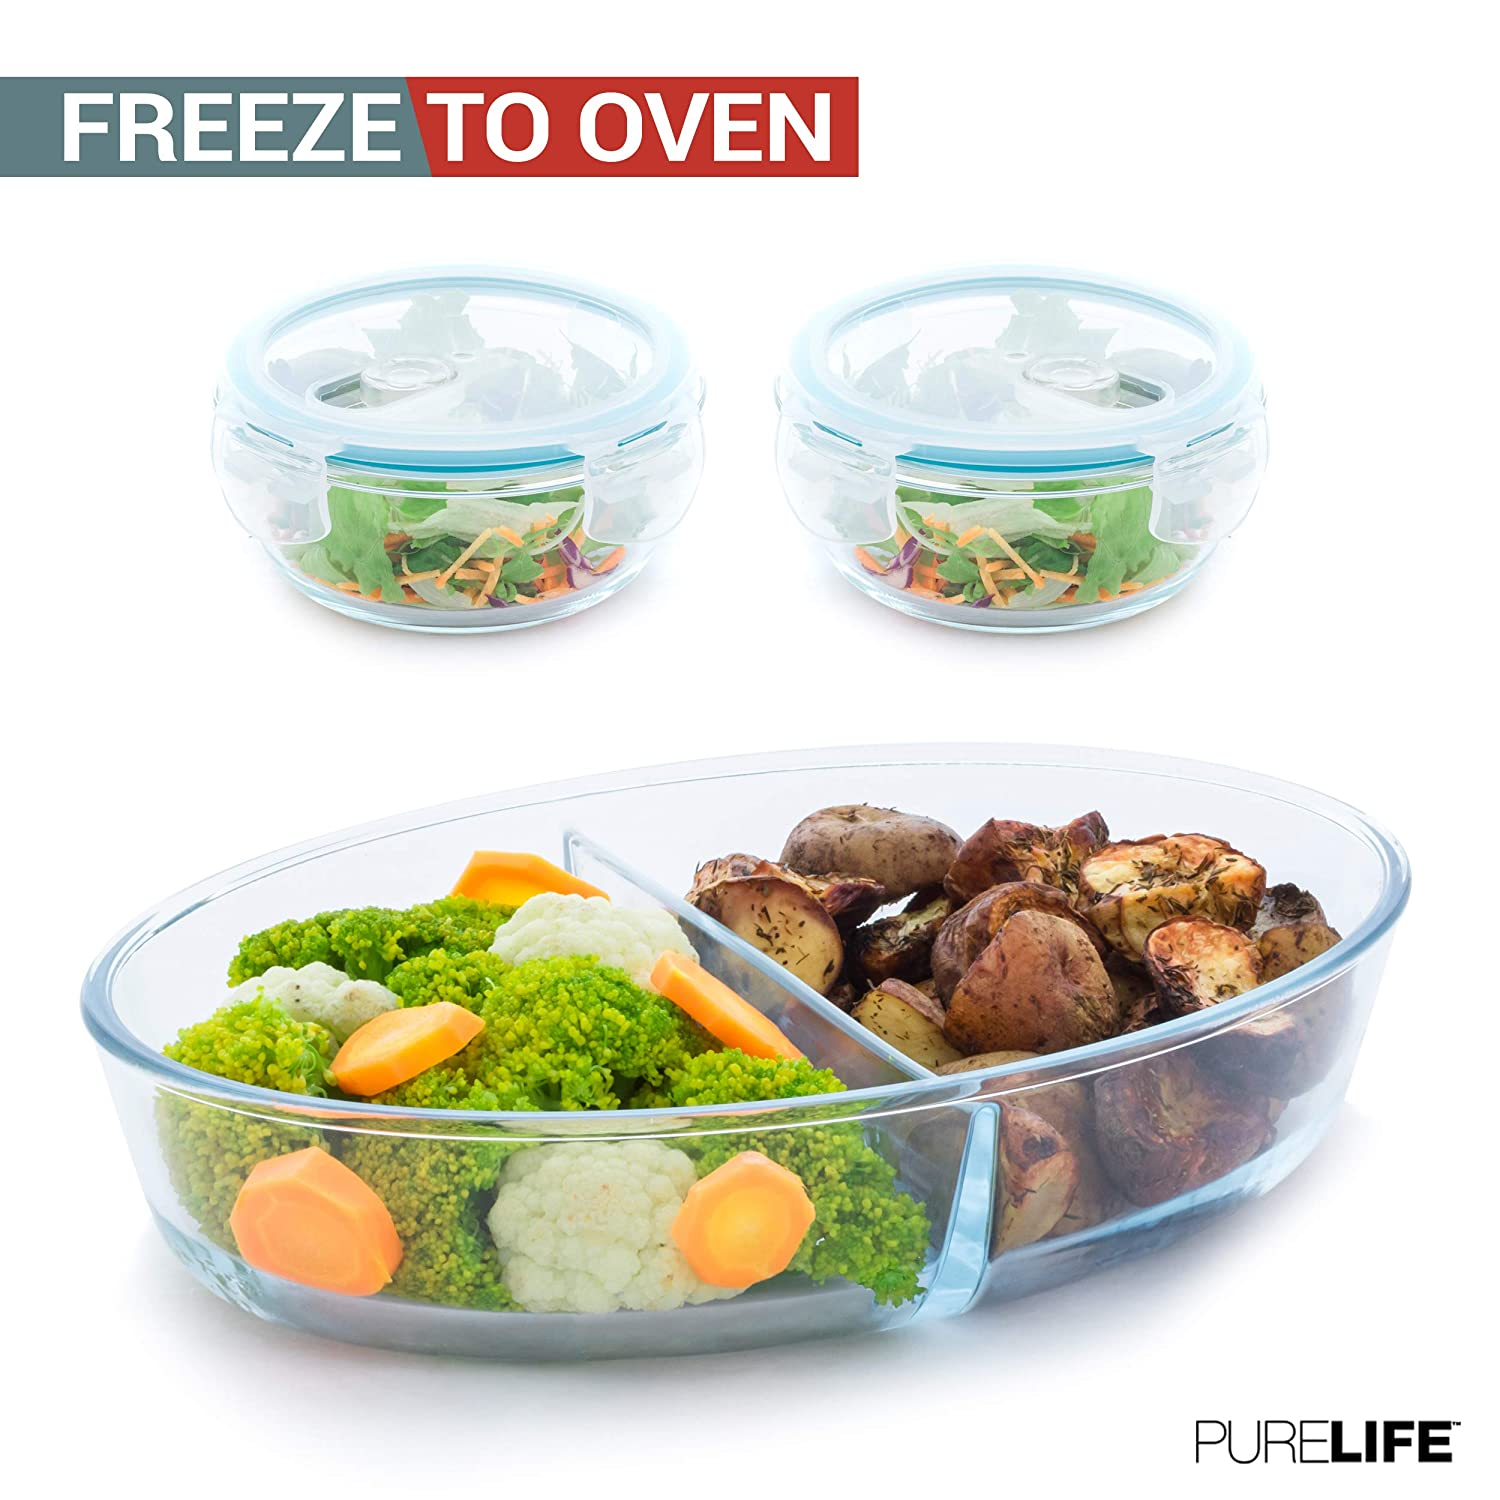 Casserole Dish by PureLife - Bakeware Set Of 3 | Borosilicate Baking Pan W/ 2 Glass Storage Containers for Meal Prep | Dishwasher, Microwave, Oven & Freezer Safe | Lunch Containers for Food W/Lids